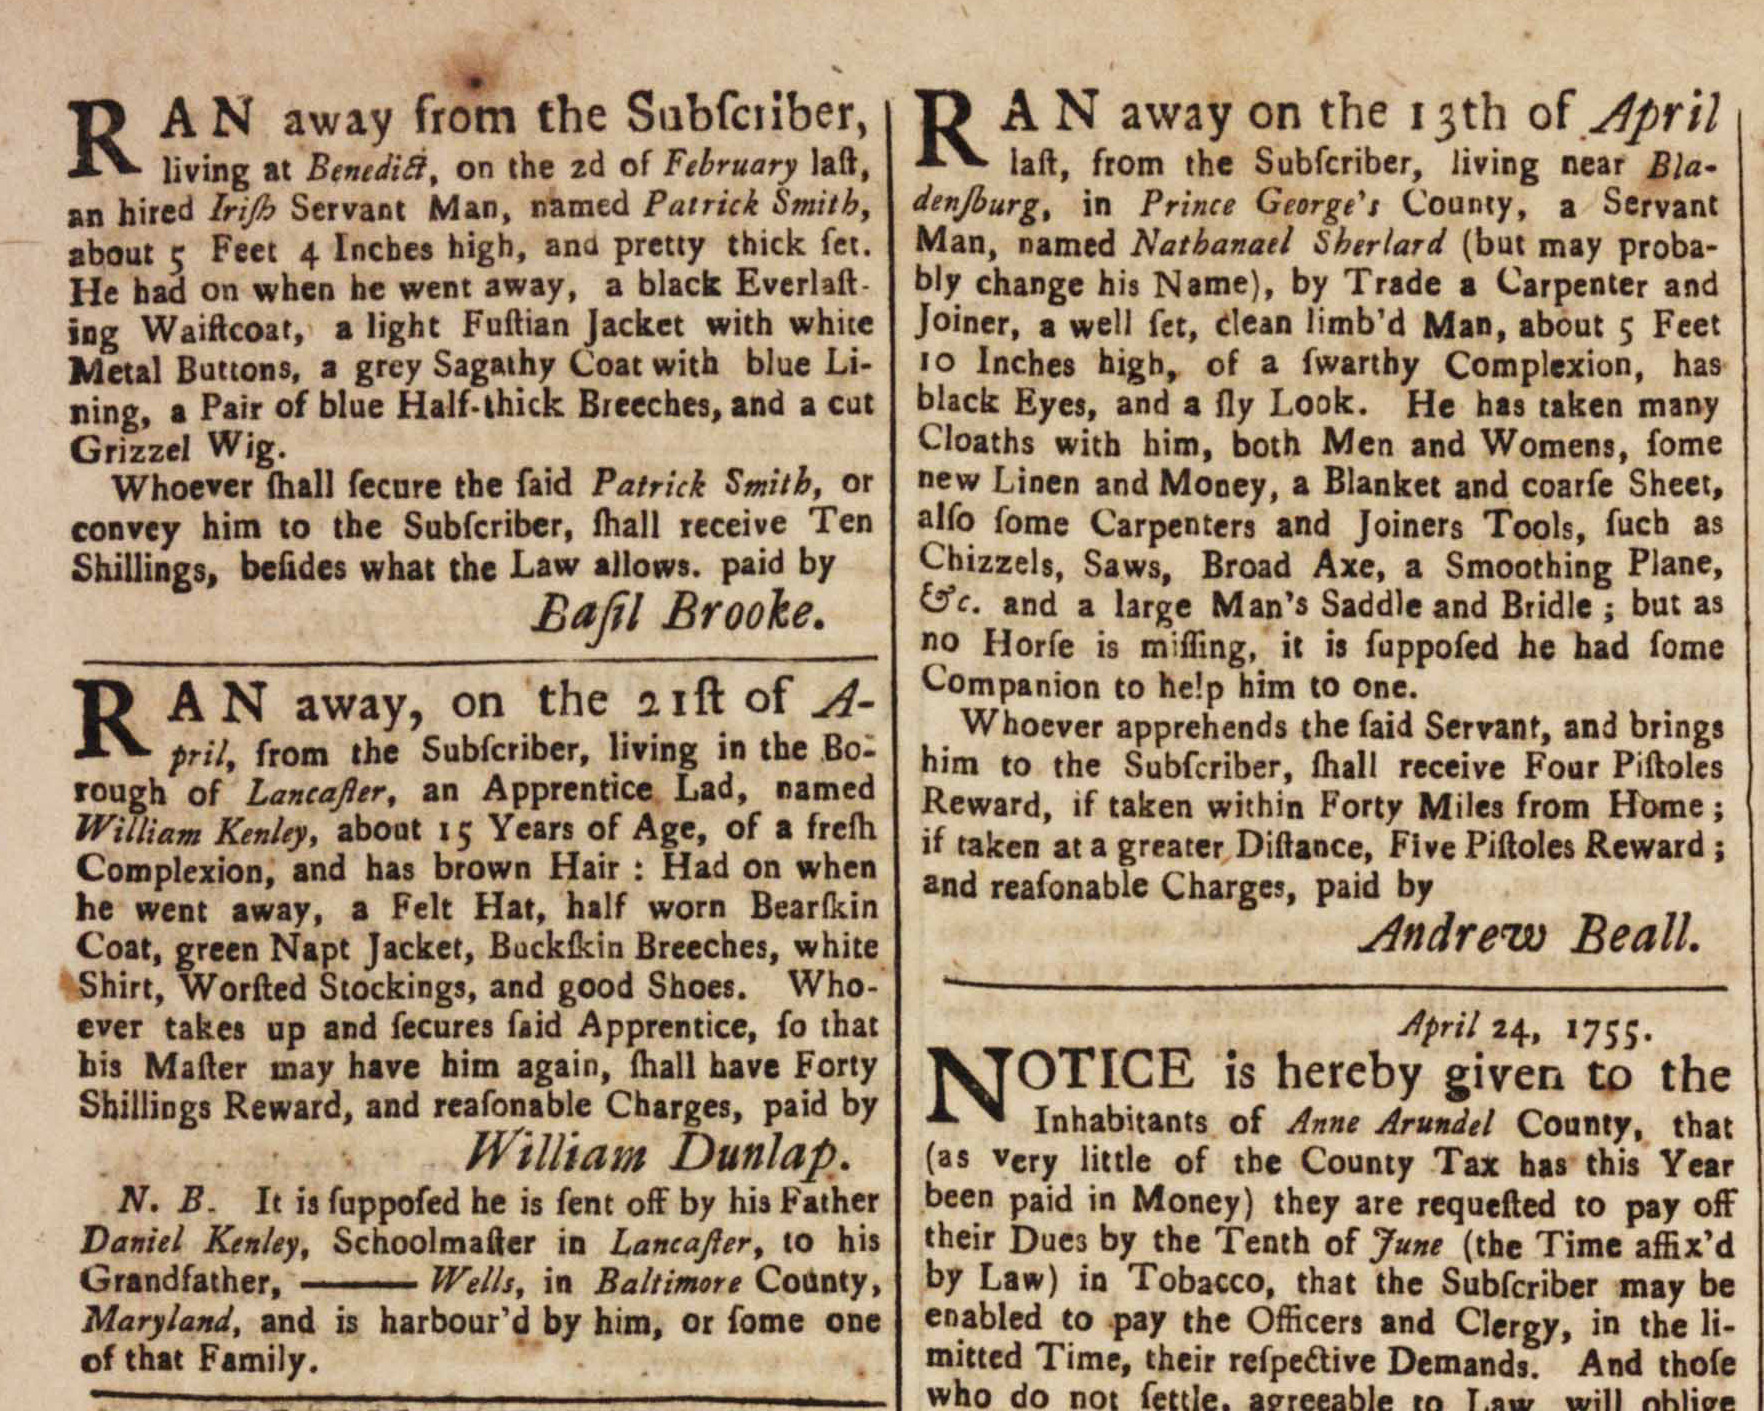 Advertisements for runaway indentured servants, Md. Gazette, May 22, 1755 (GLC)